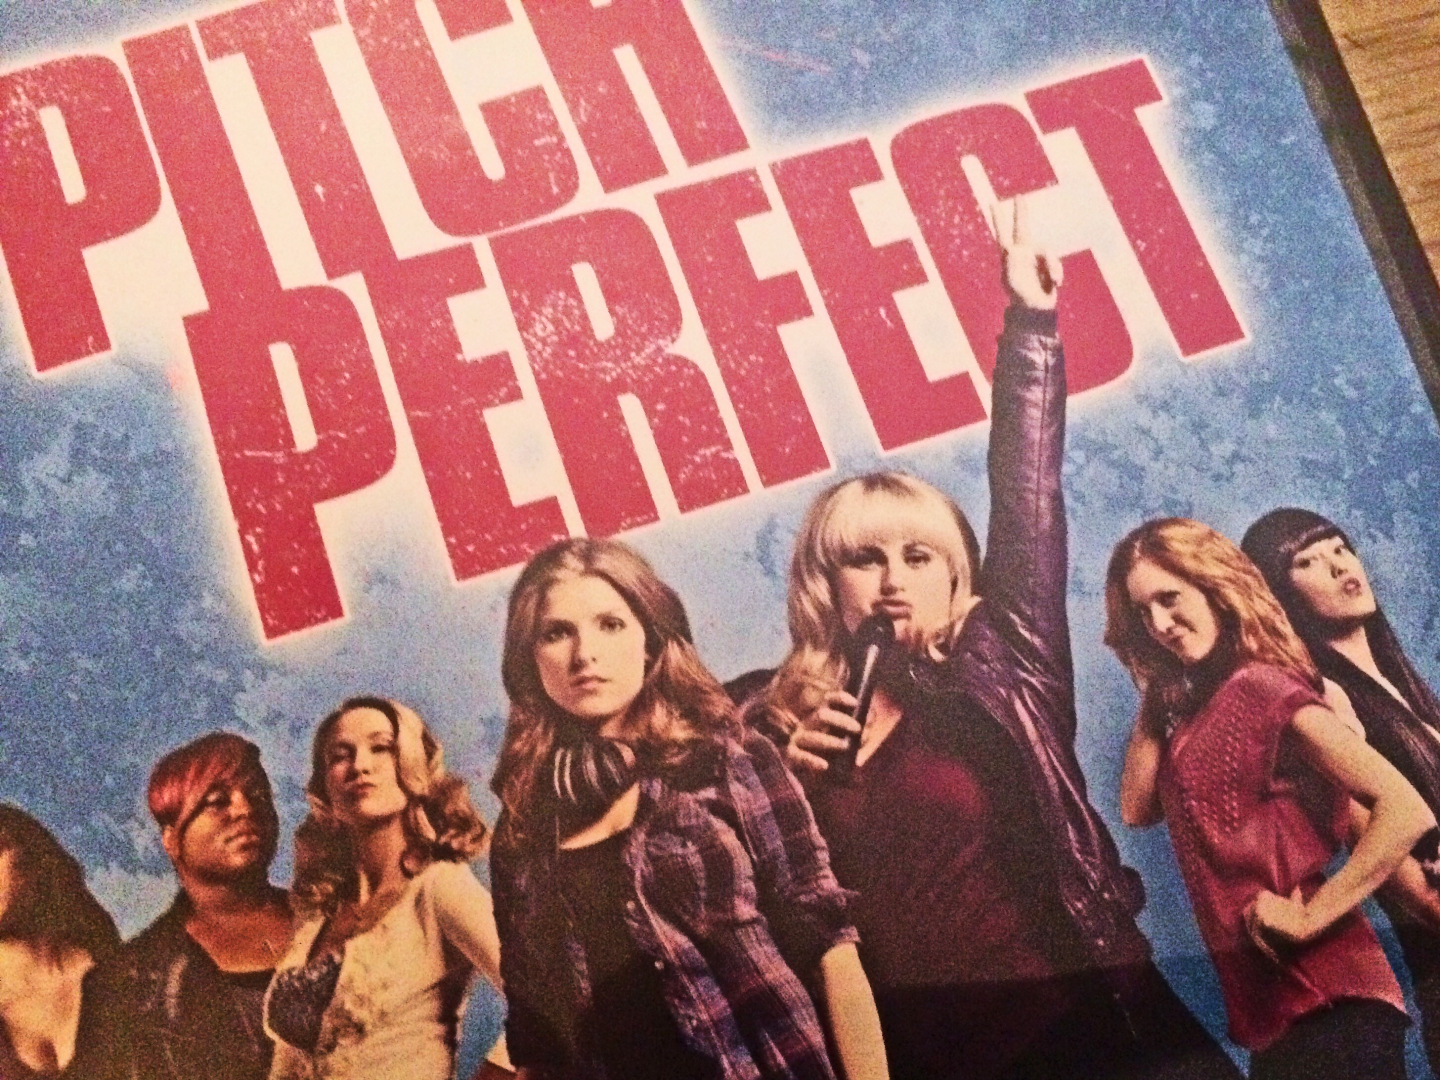 Voll im Trott, not my Trott: Pitch Perfect